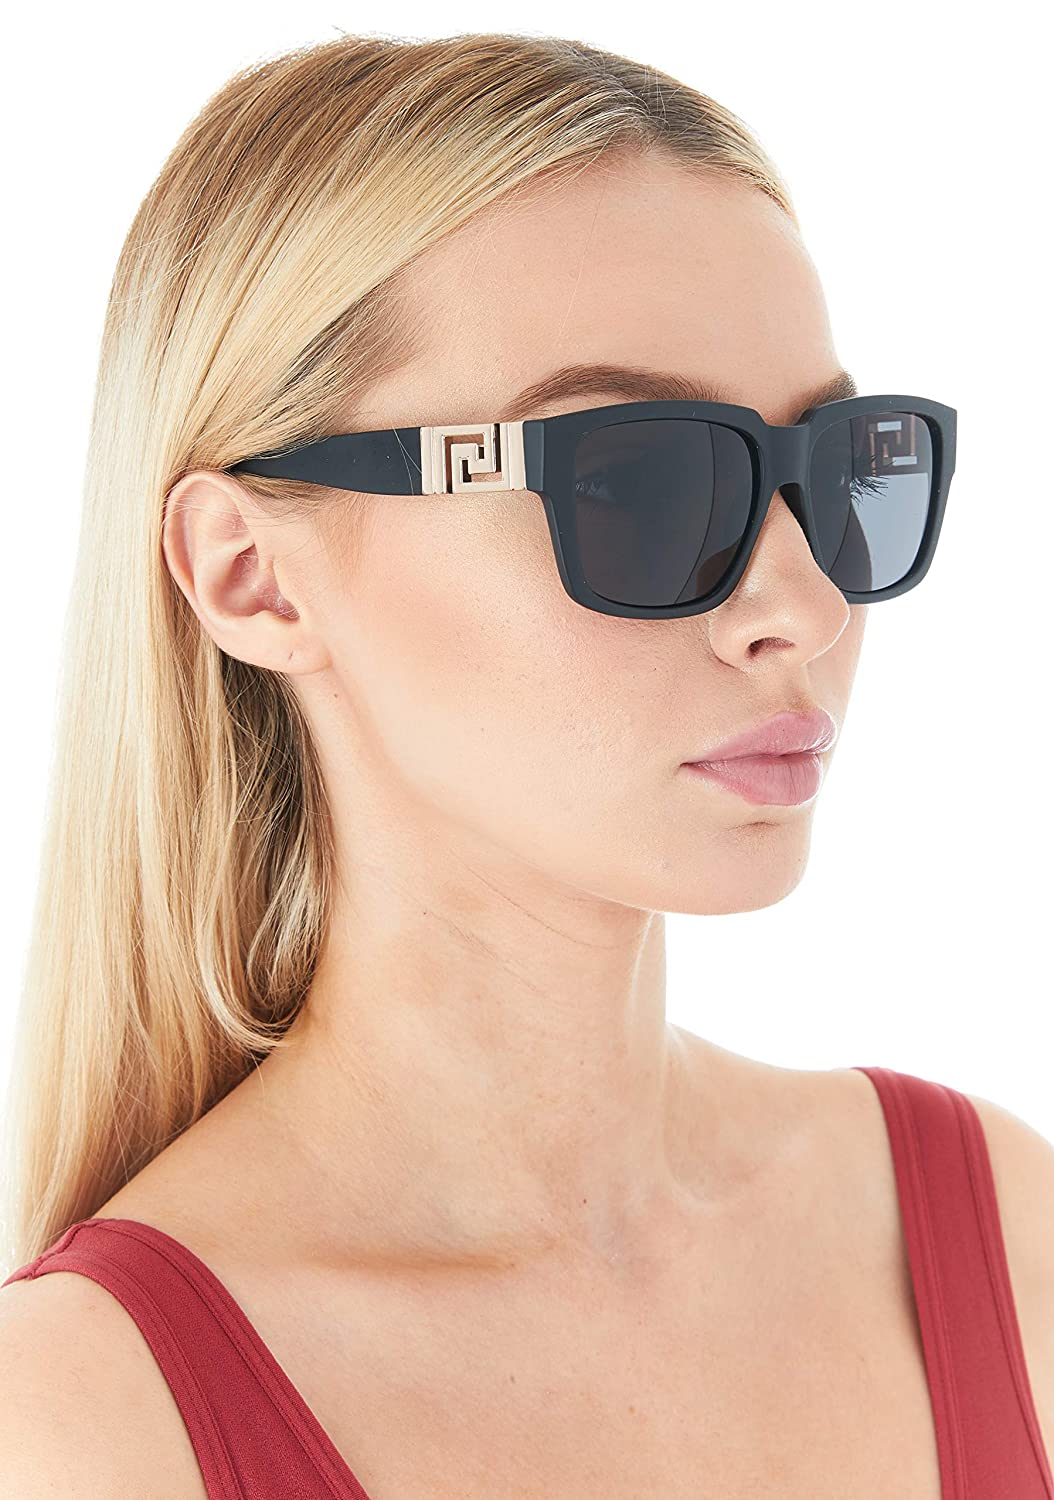 be4696d289 Amazon.com  DG Sunglasses for Women Oversized Eyewear Fashion - Assorted  Styles   Colors (Black Rose